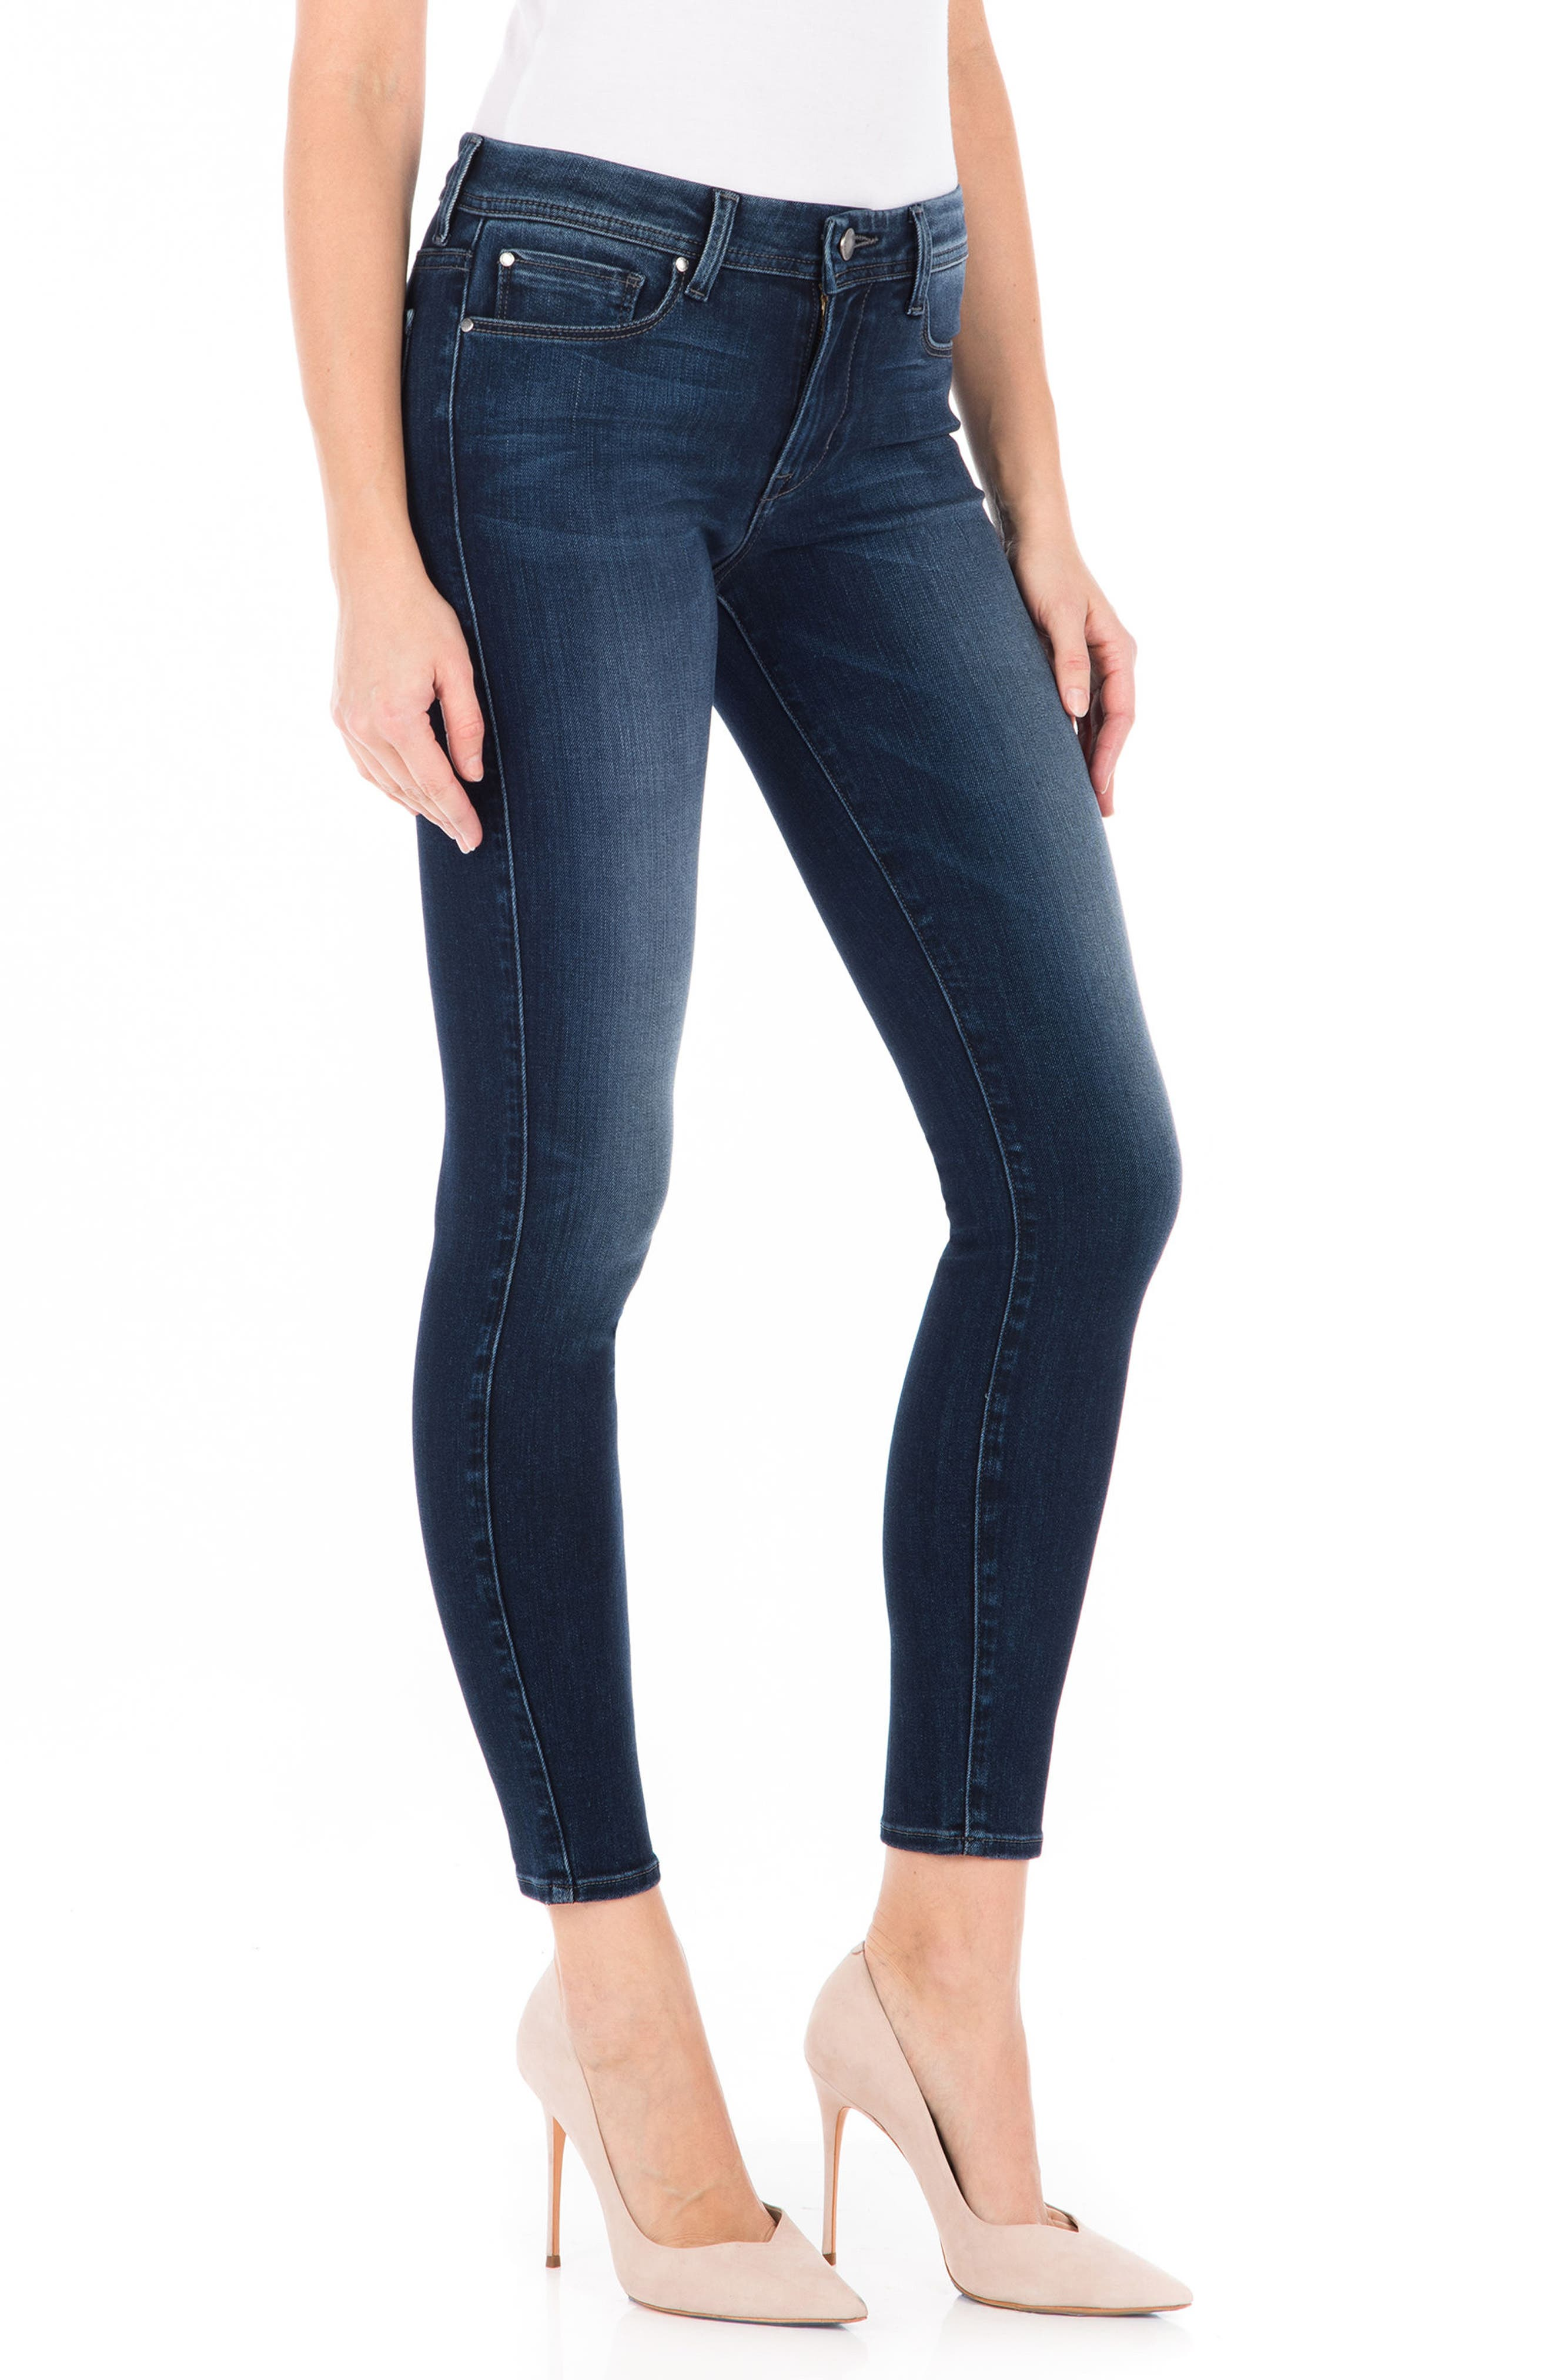 Sola Skinny Jeans,                             Alternate thumbnail 3, color,                             400